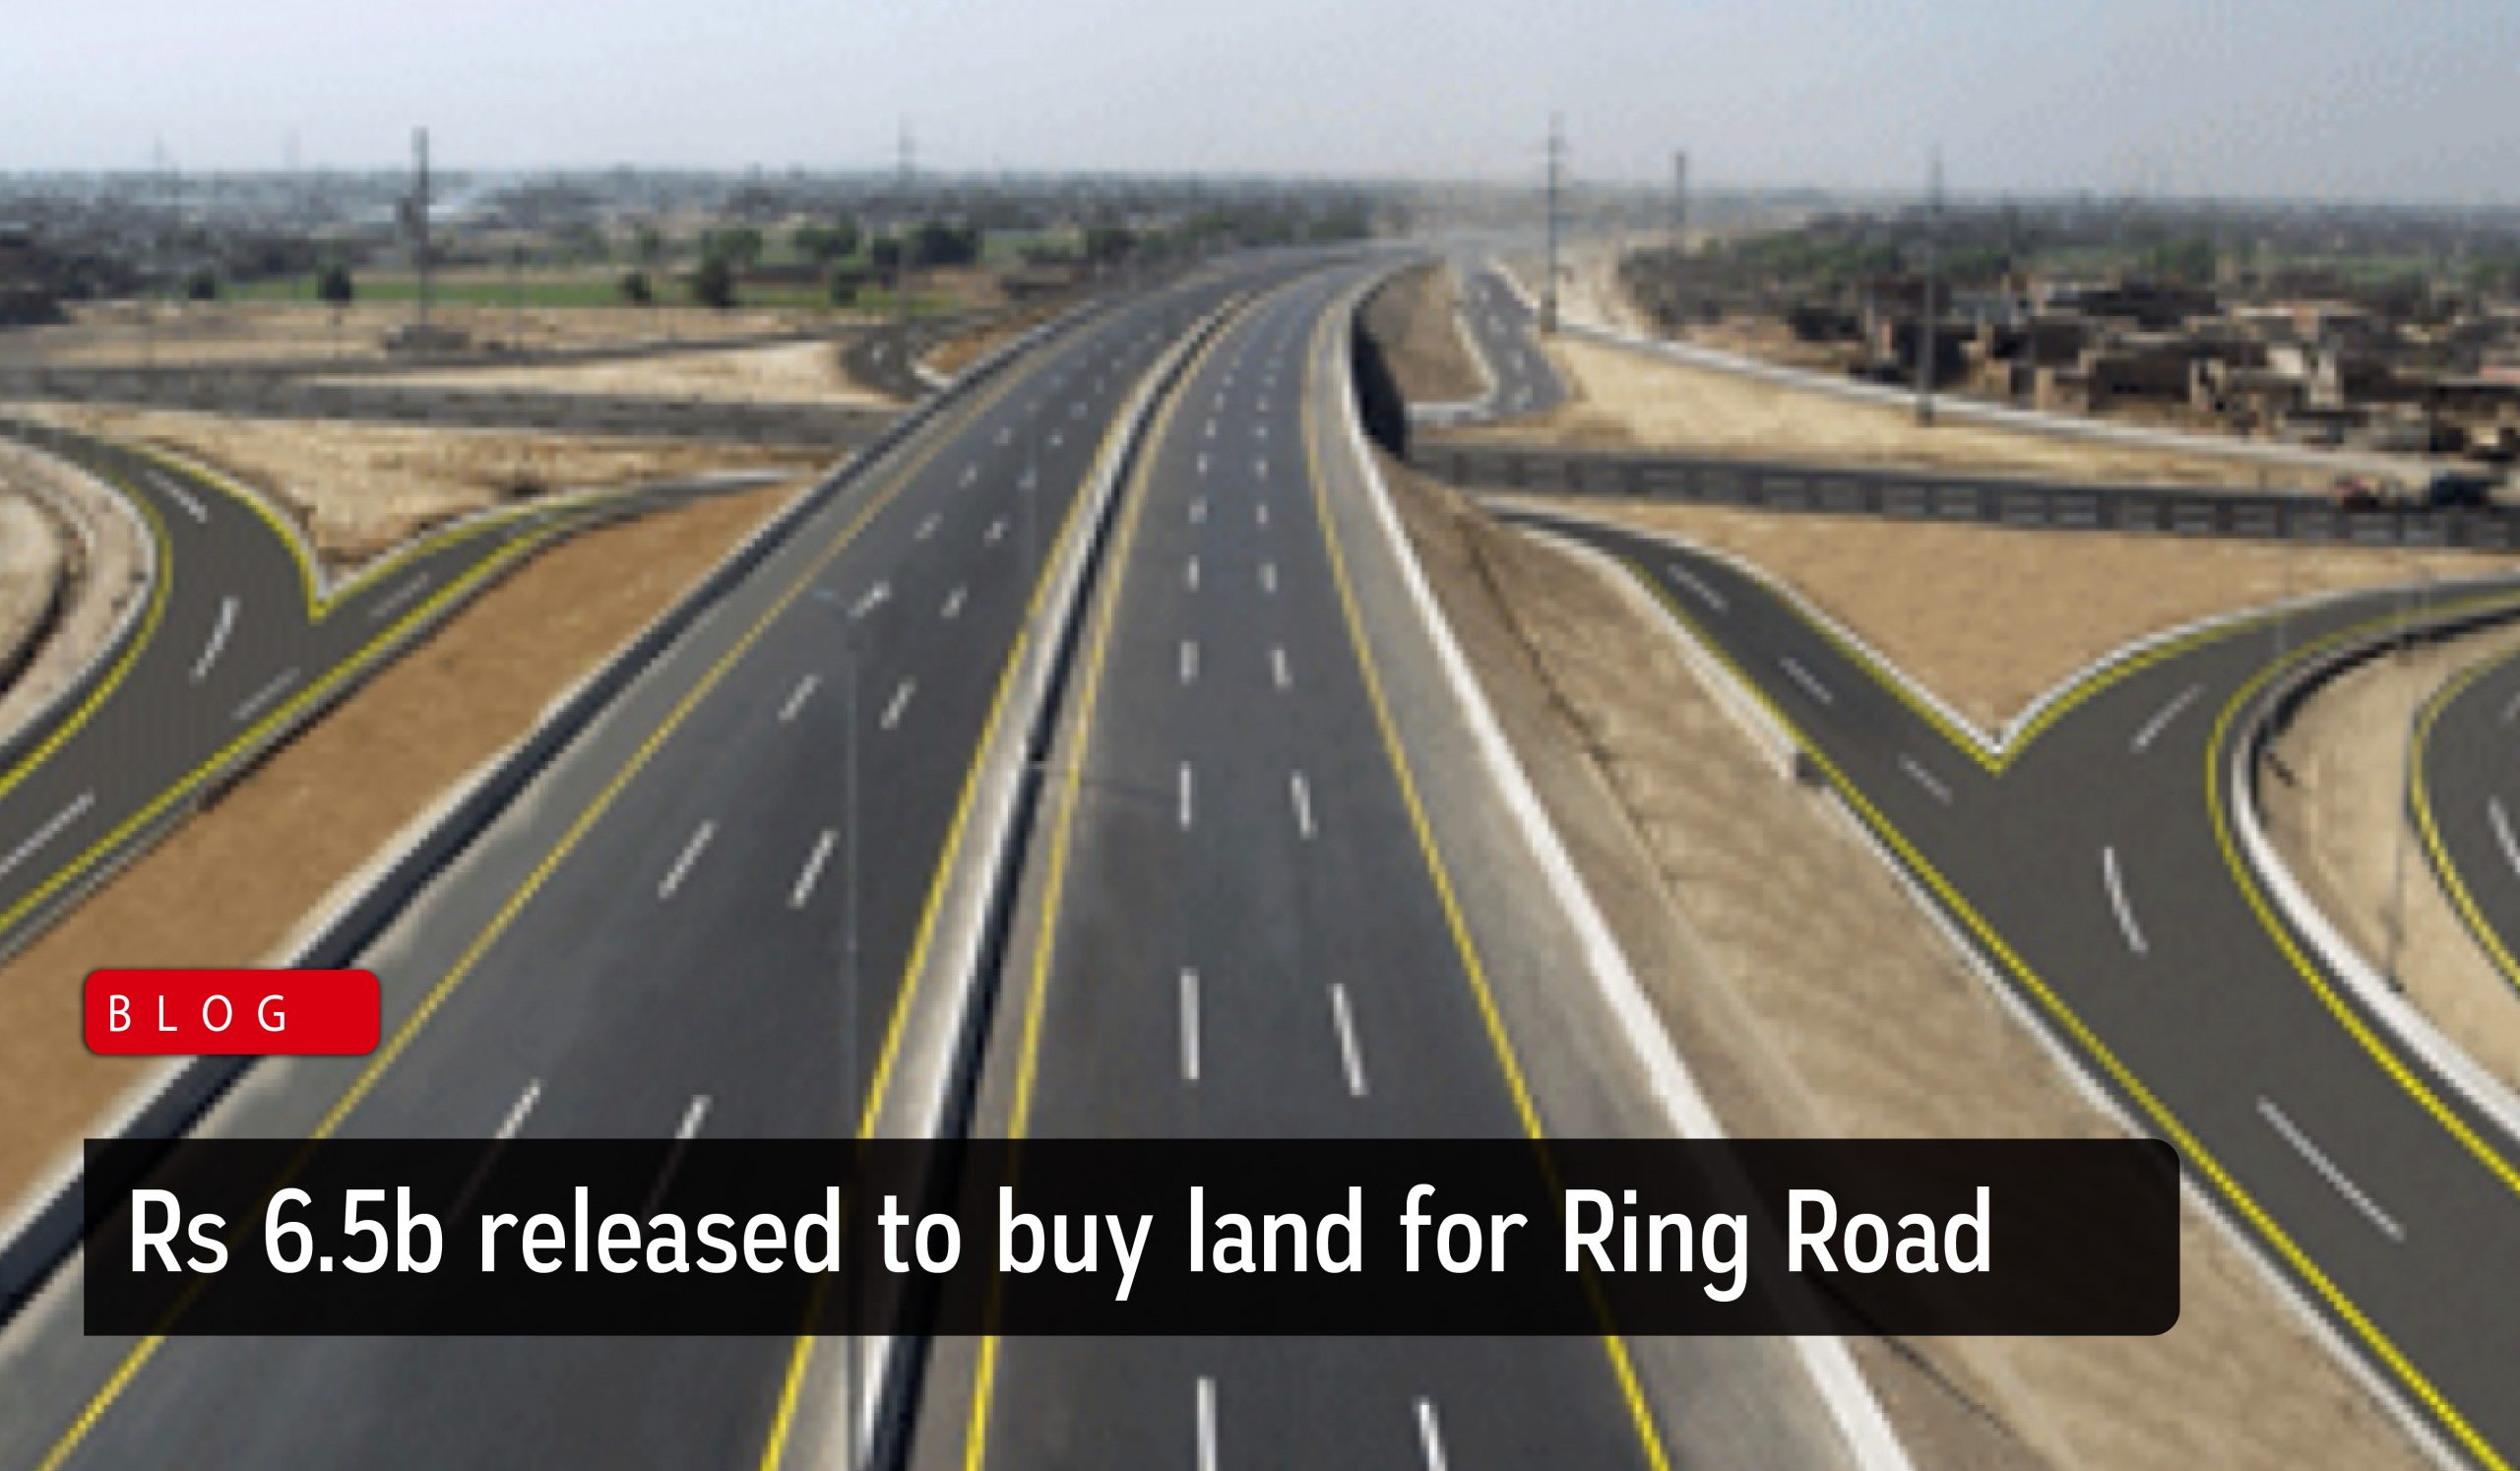 Rs 6.5b released to buy land for Ring Road - Zarkon Group News Blog - FAH33M